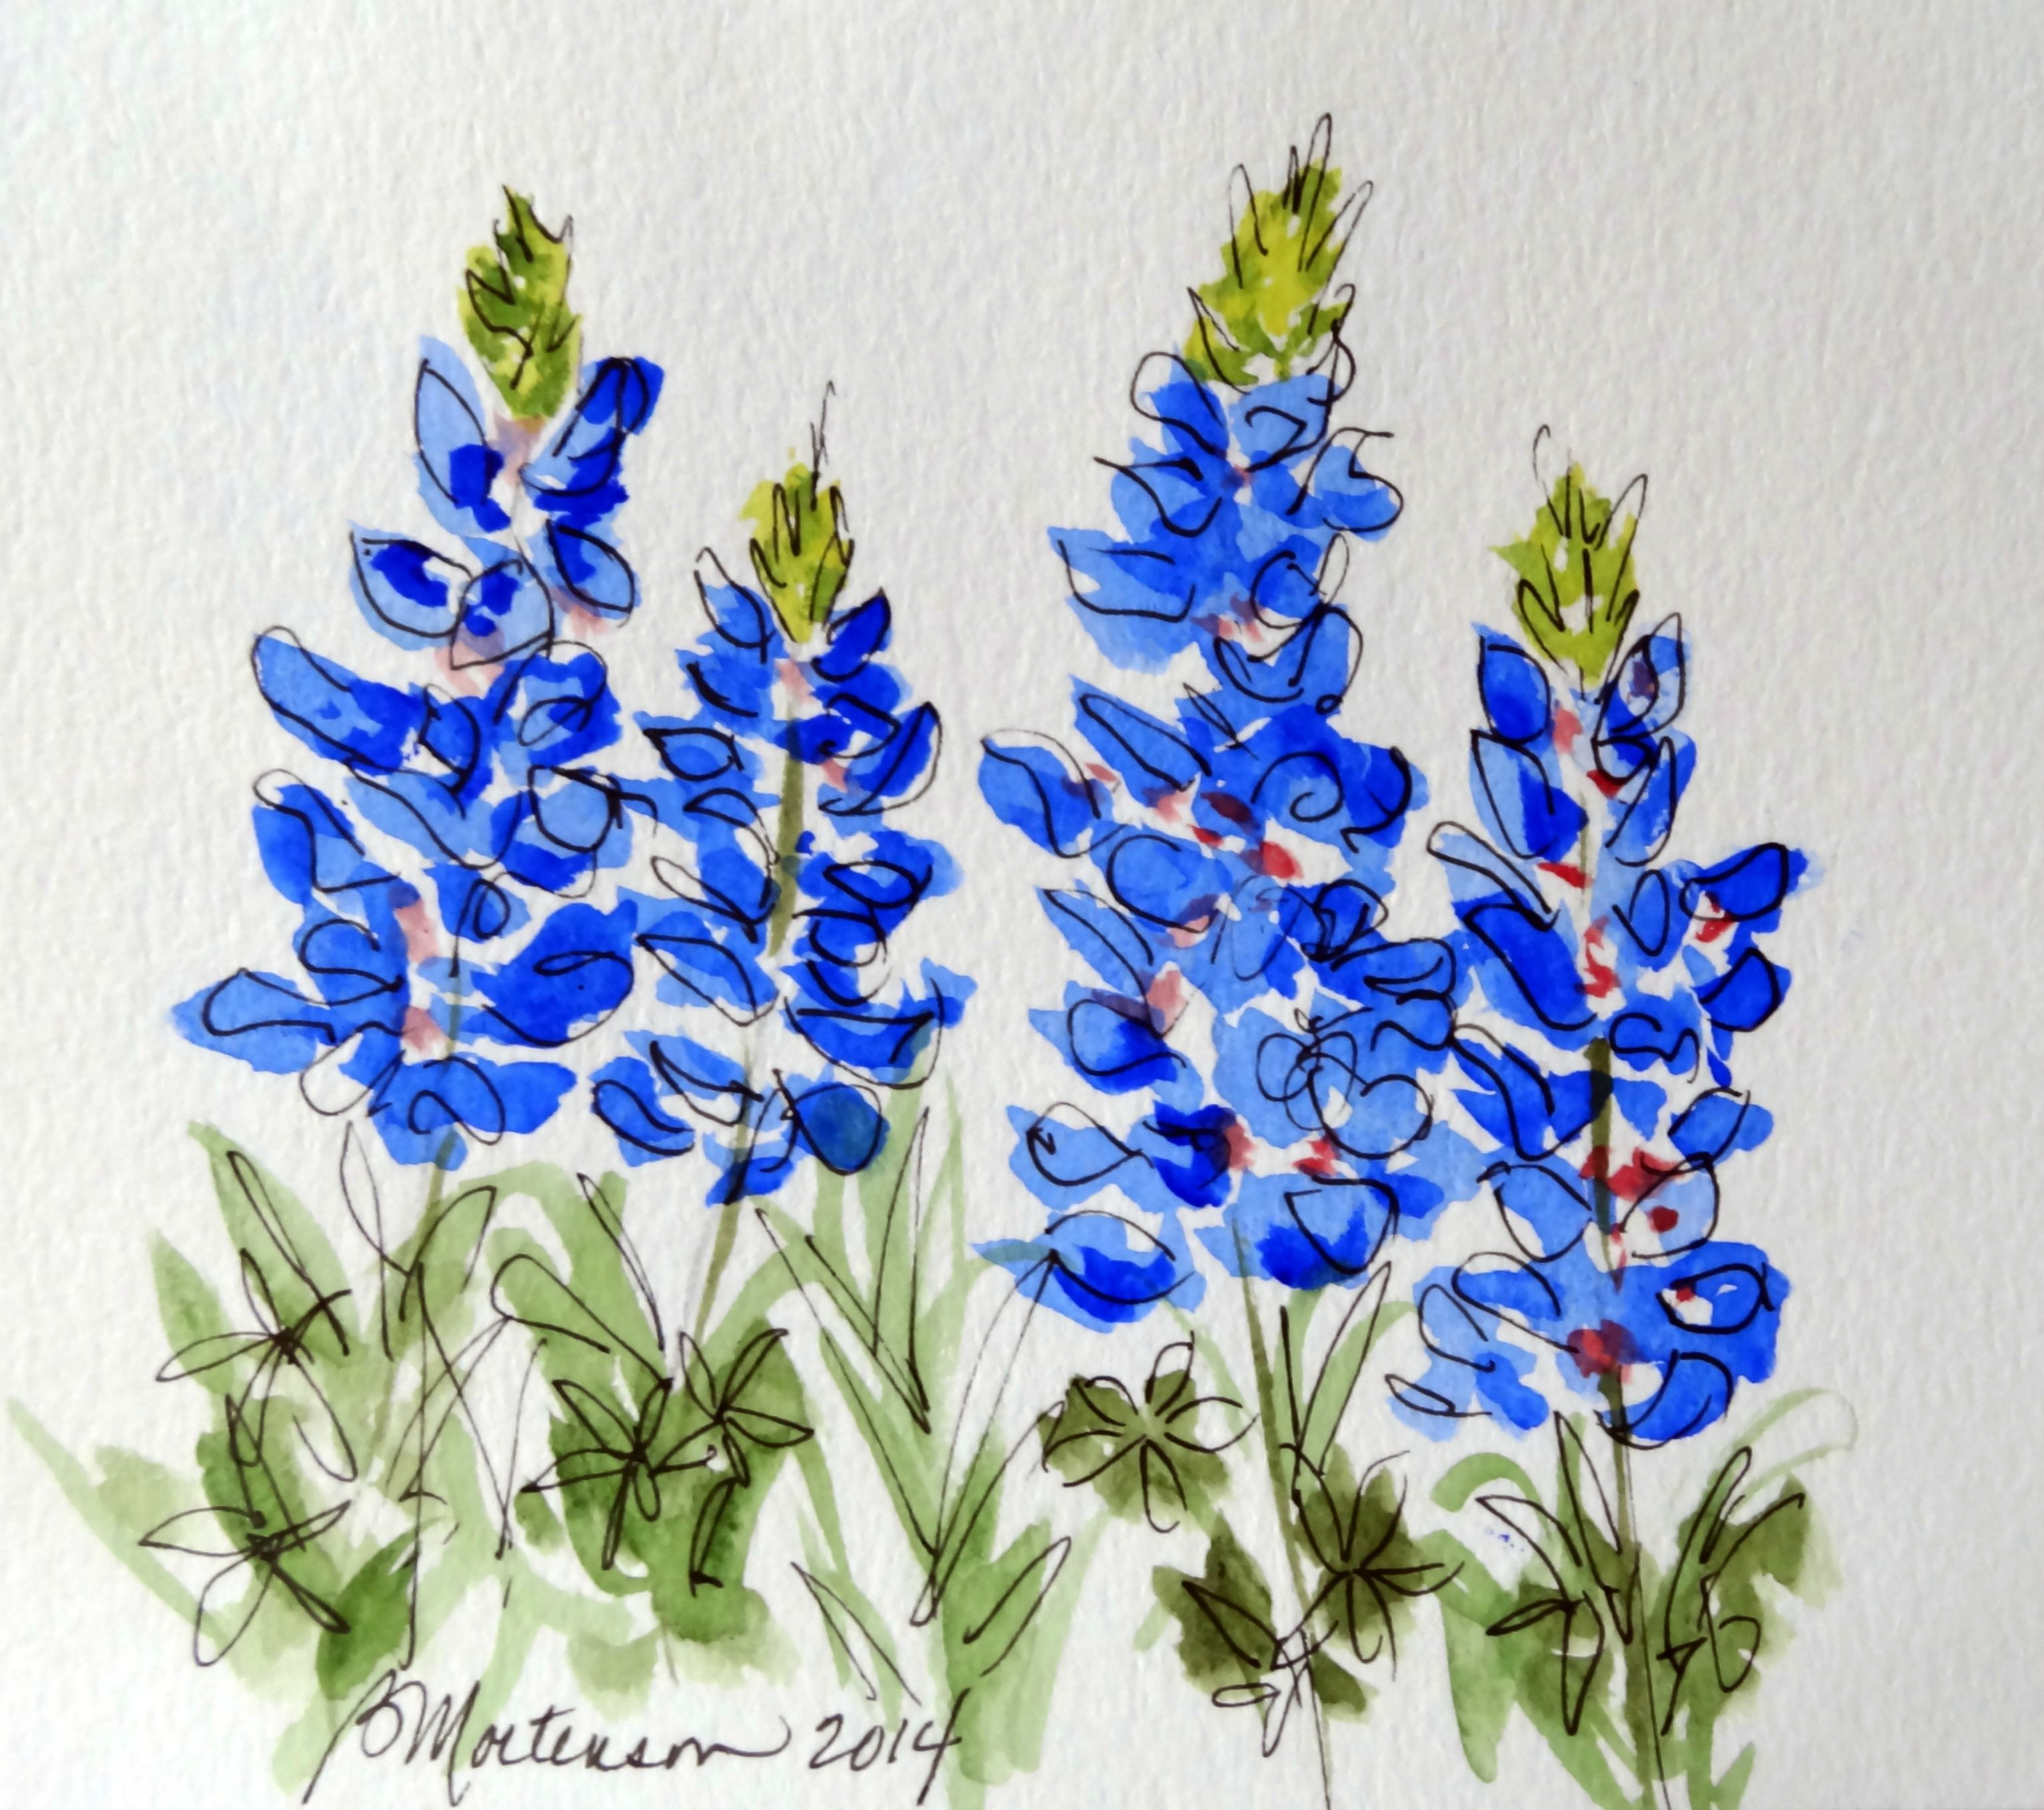 3069x2718 Another Bluebonnet Watercolor, Critiques Welcomed Watercolor